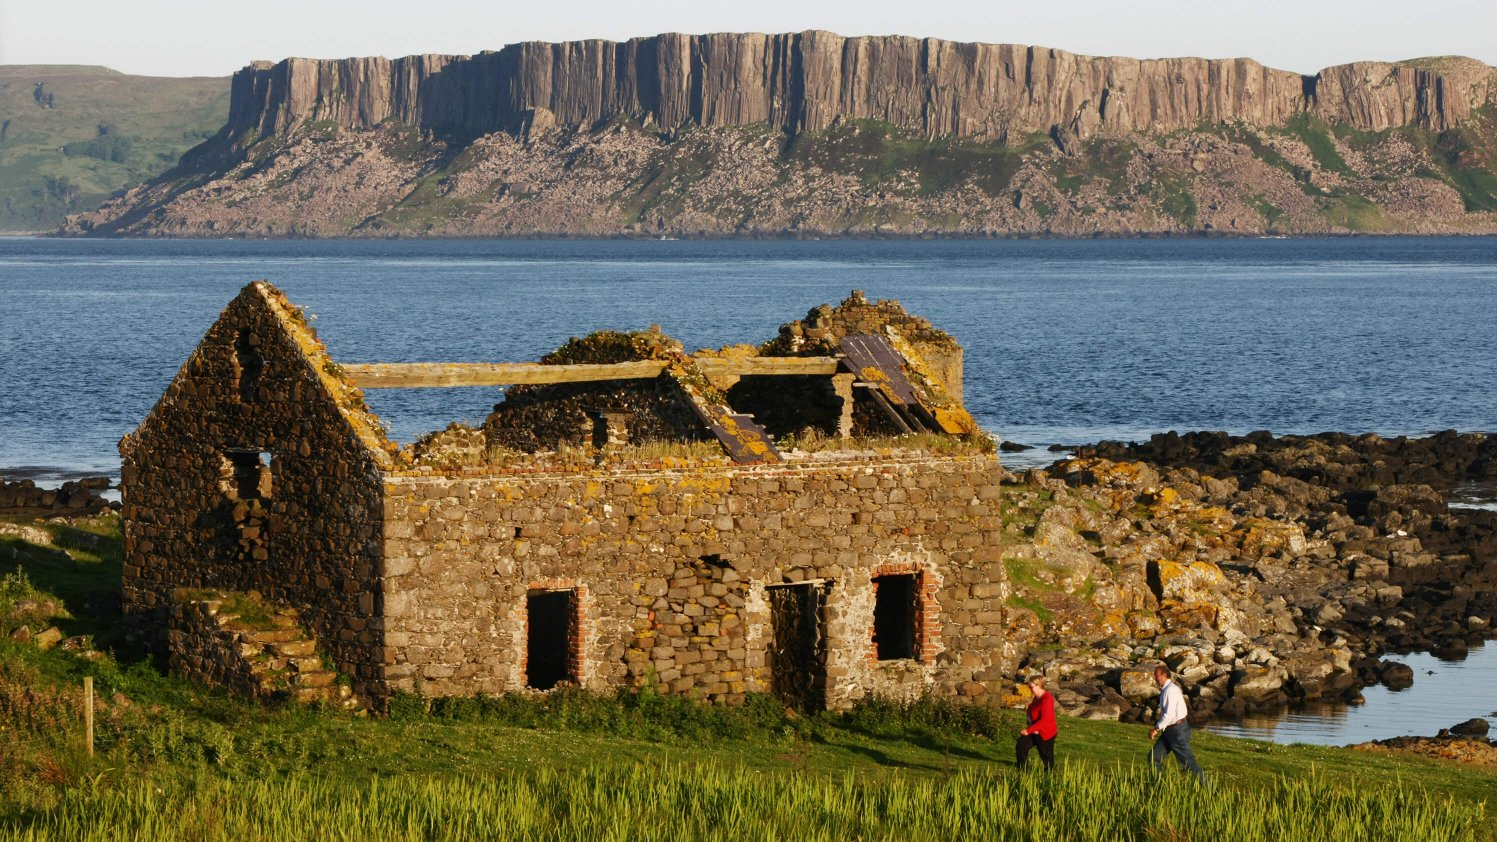 Abandonded cottage at Usher Point on Rathlin Island off the Antrim coast, Ireland